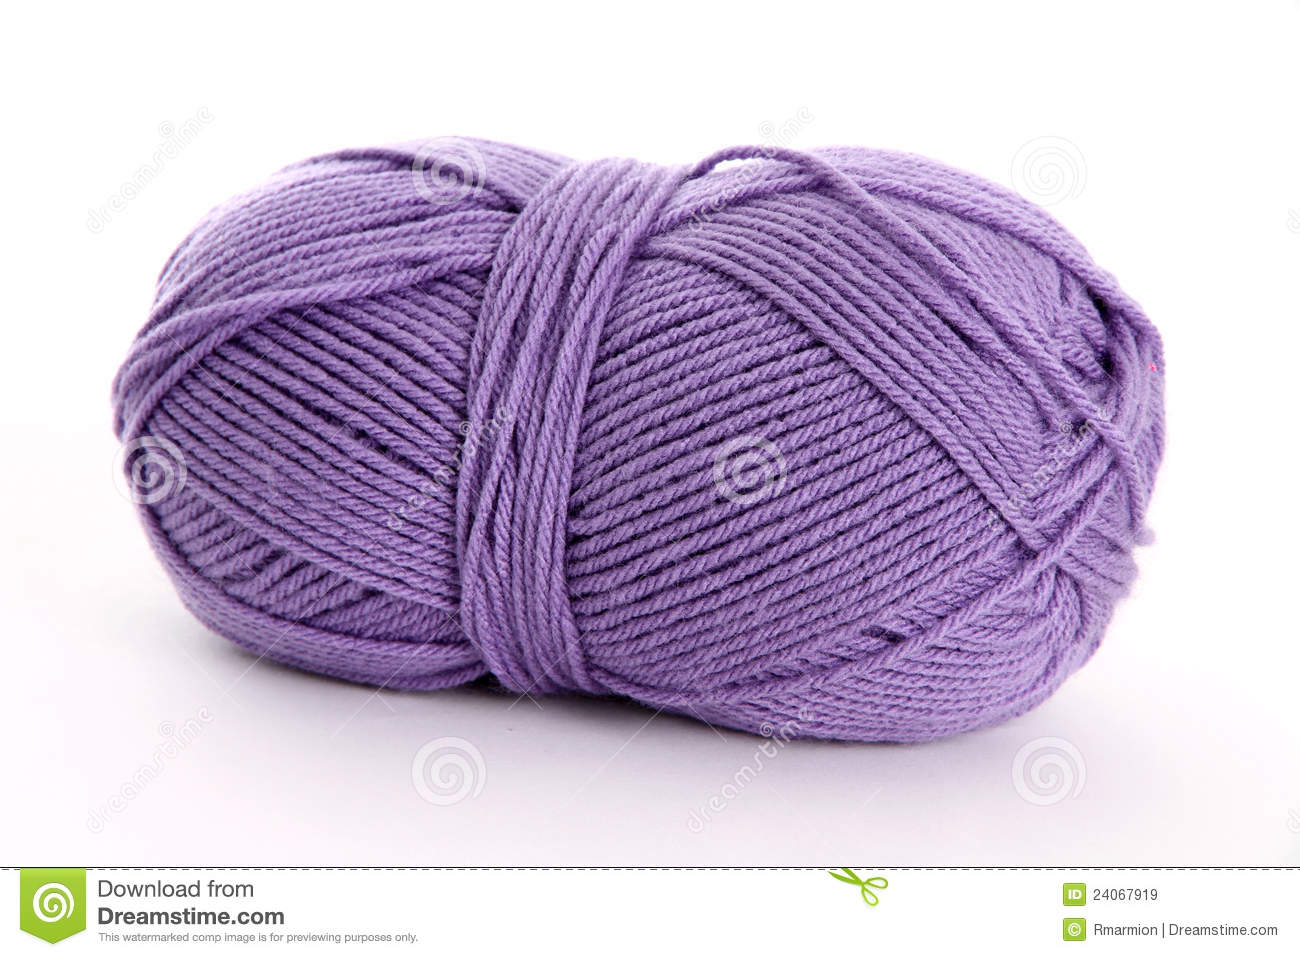 ball of yarn - photo #28